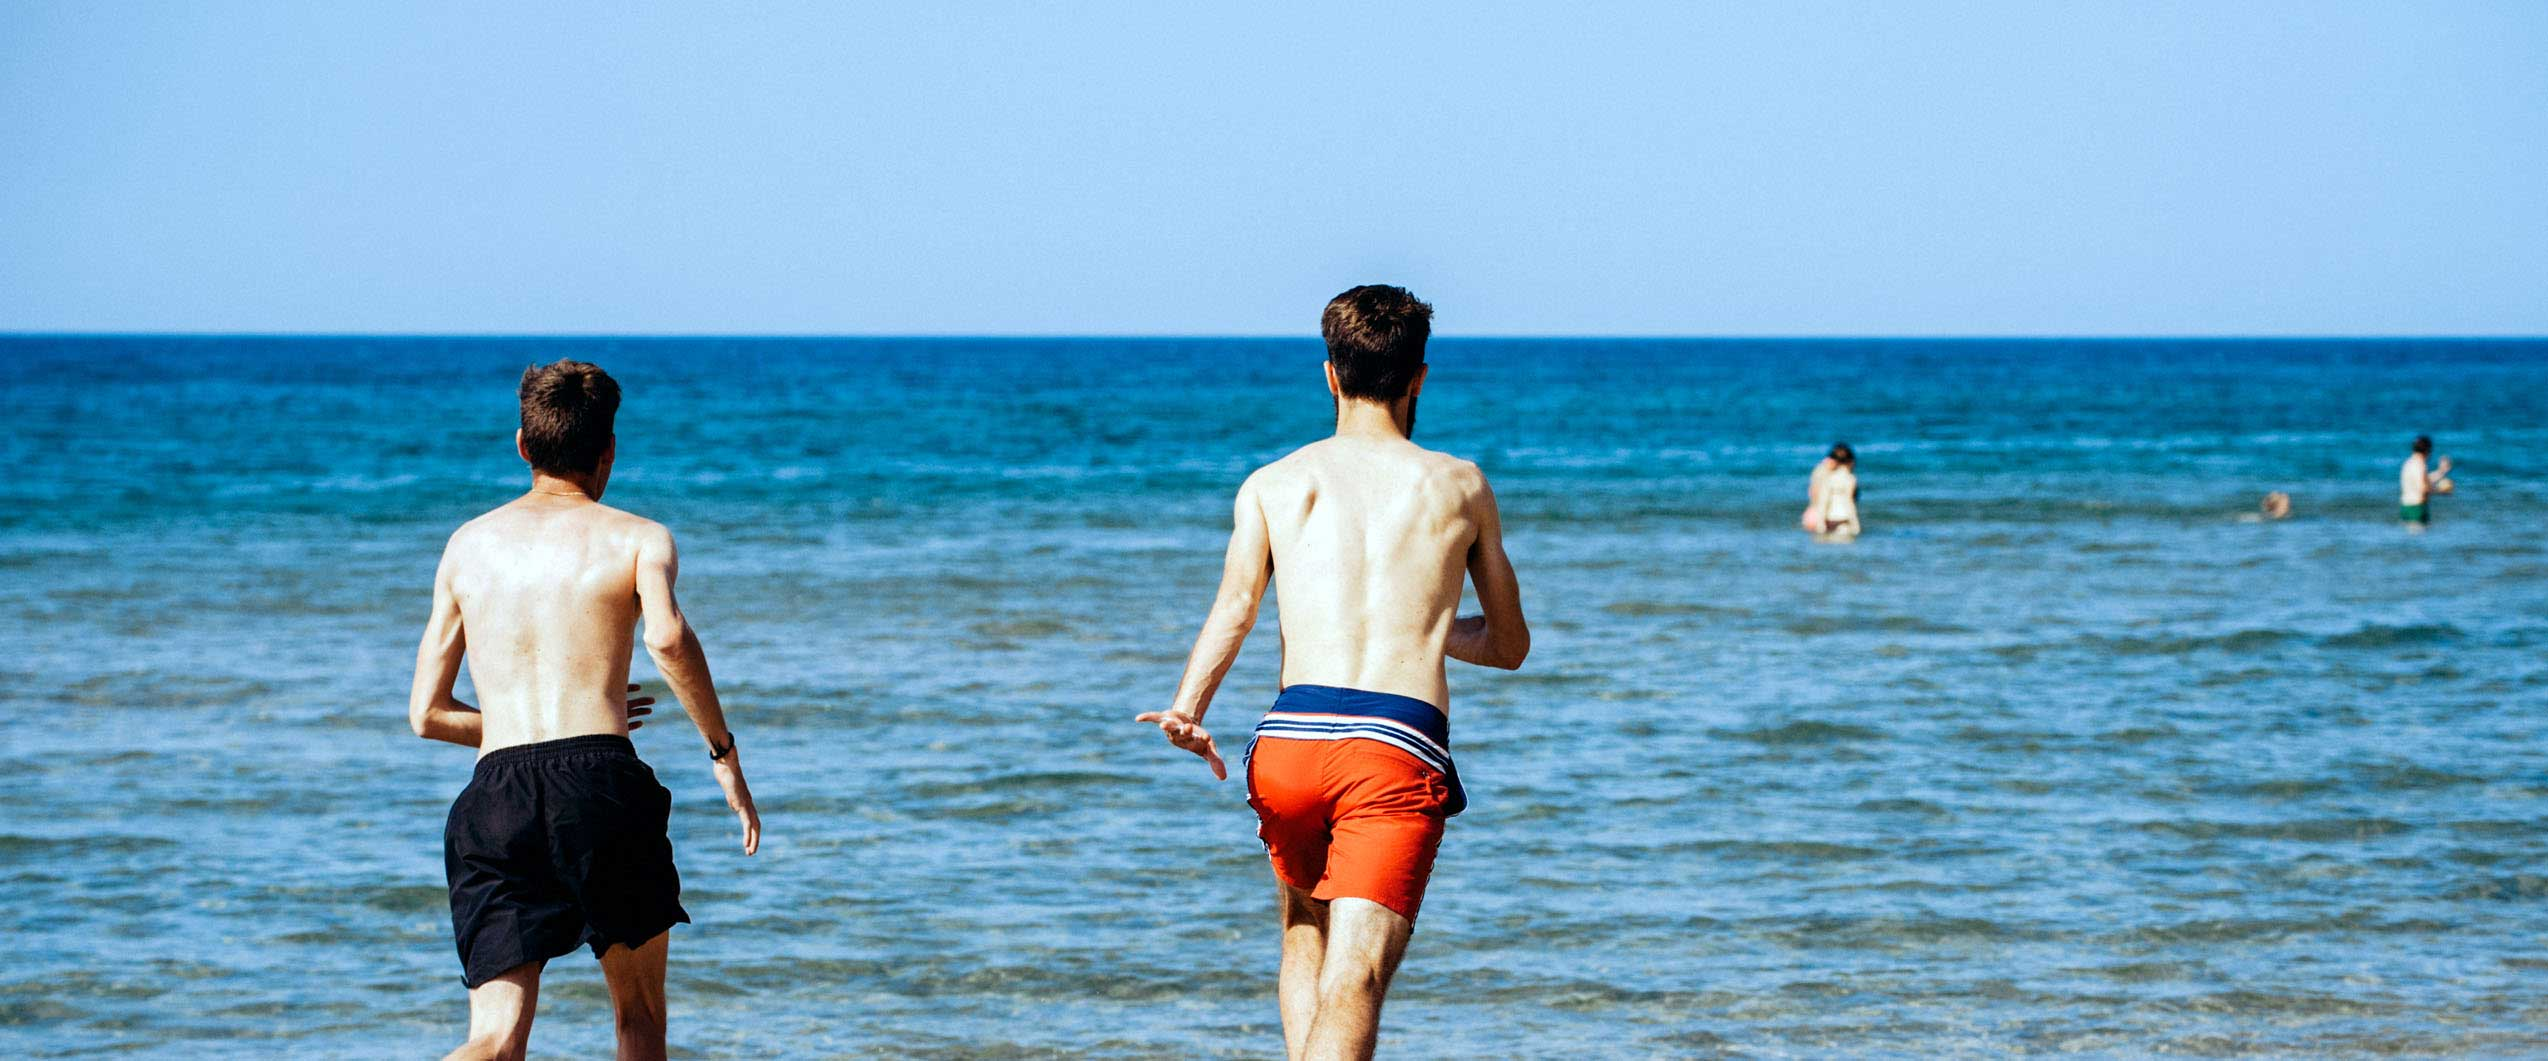 Gay Docking Pics with les pouilles gay-friendly - puglia